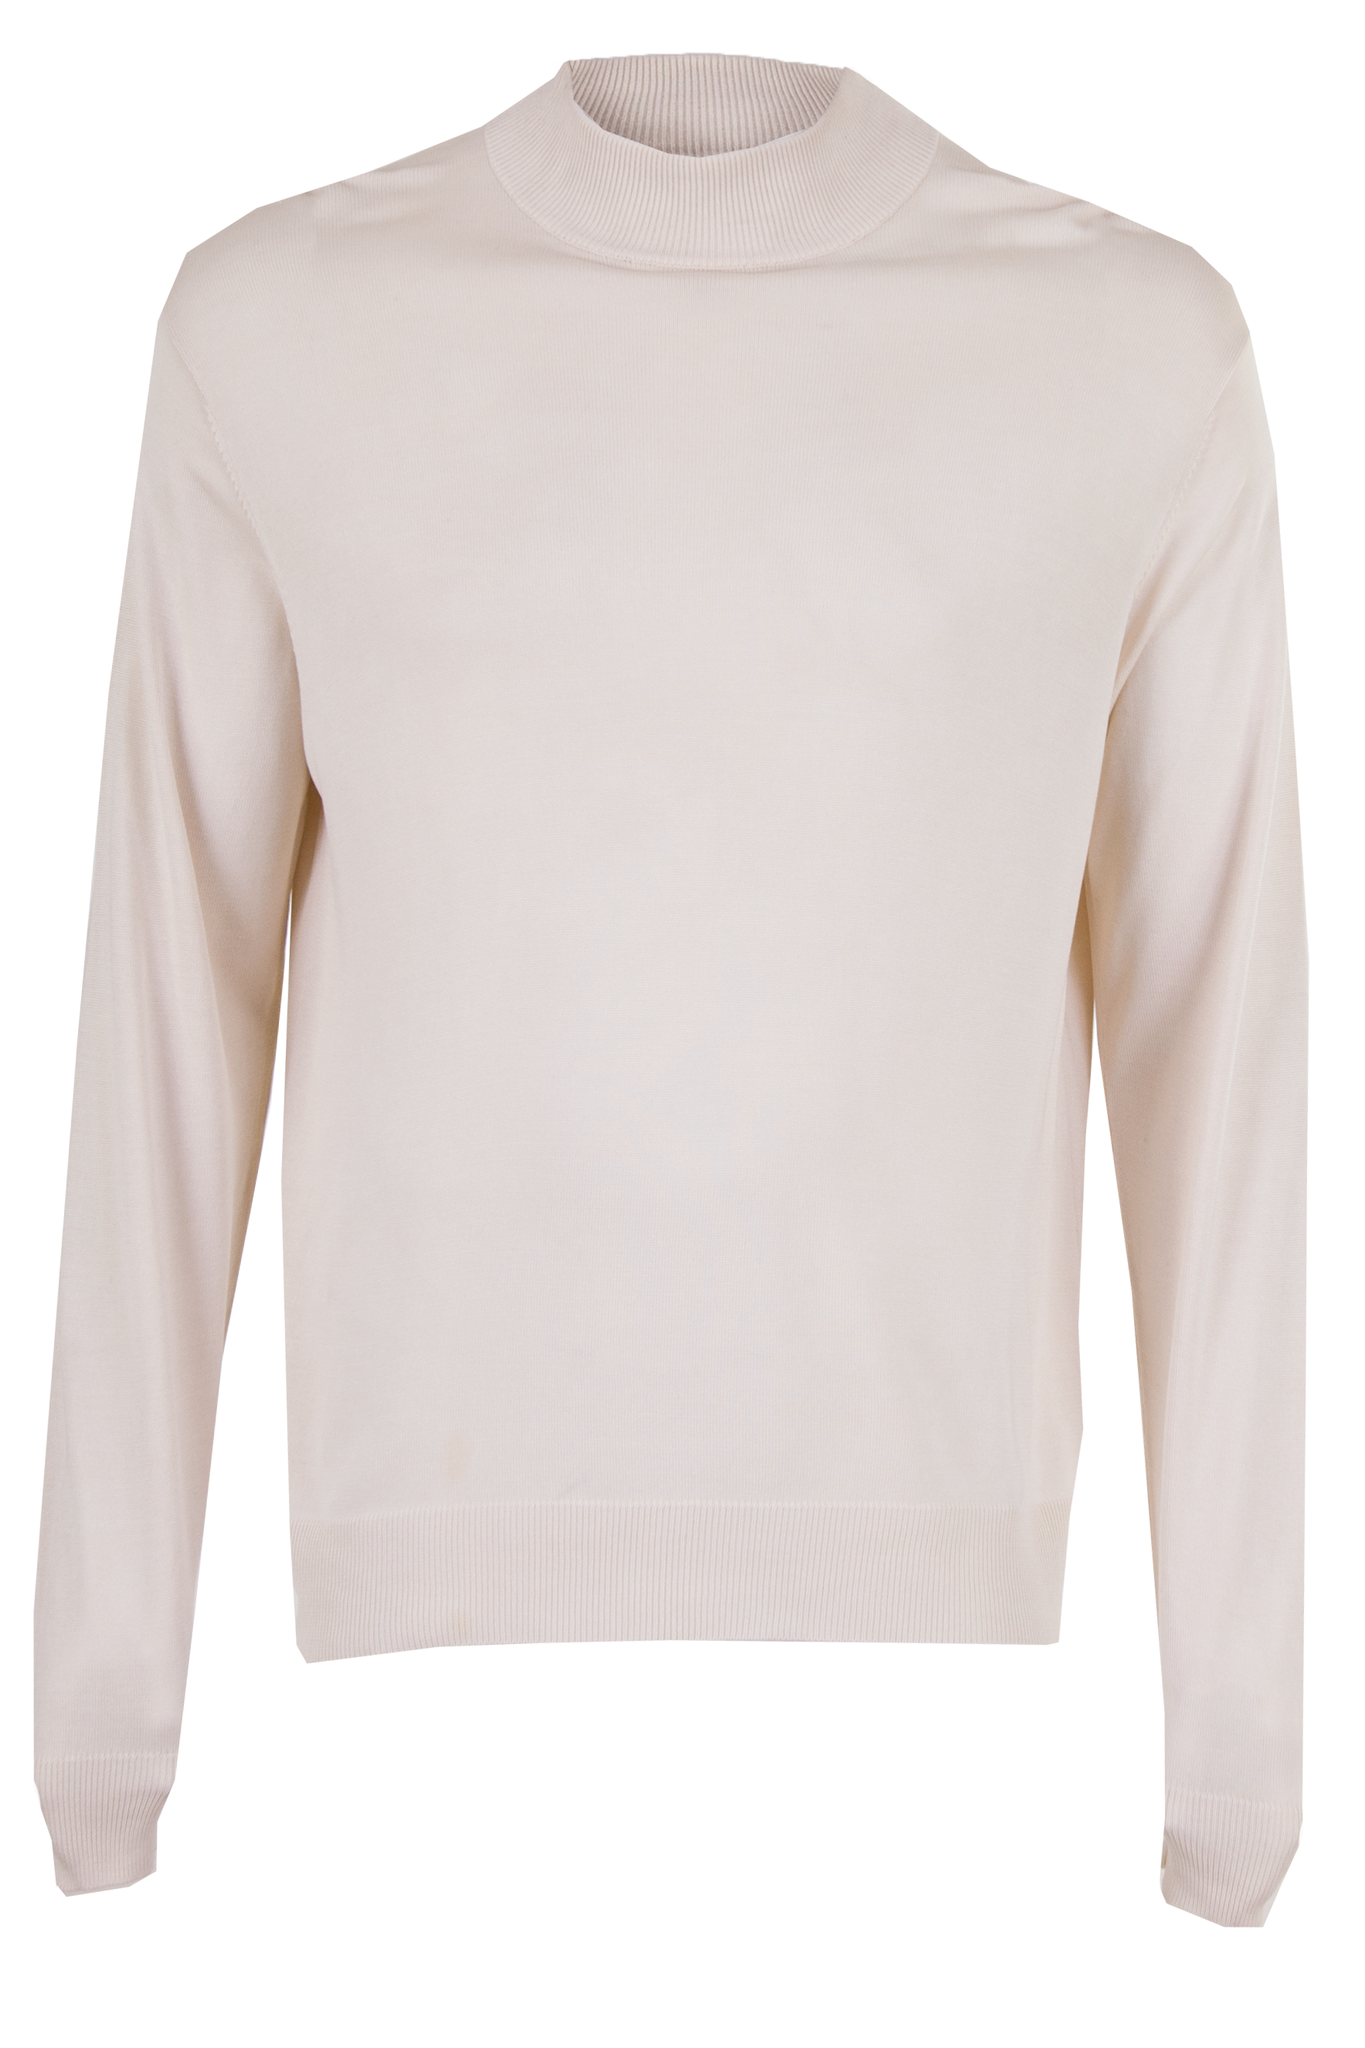 off-white silk mock neck sweater